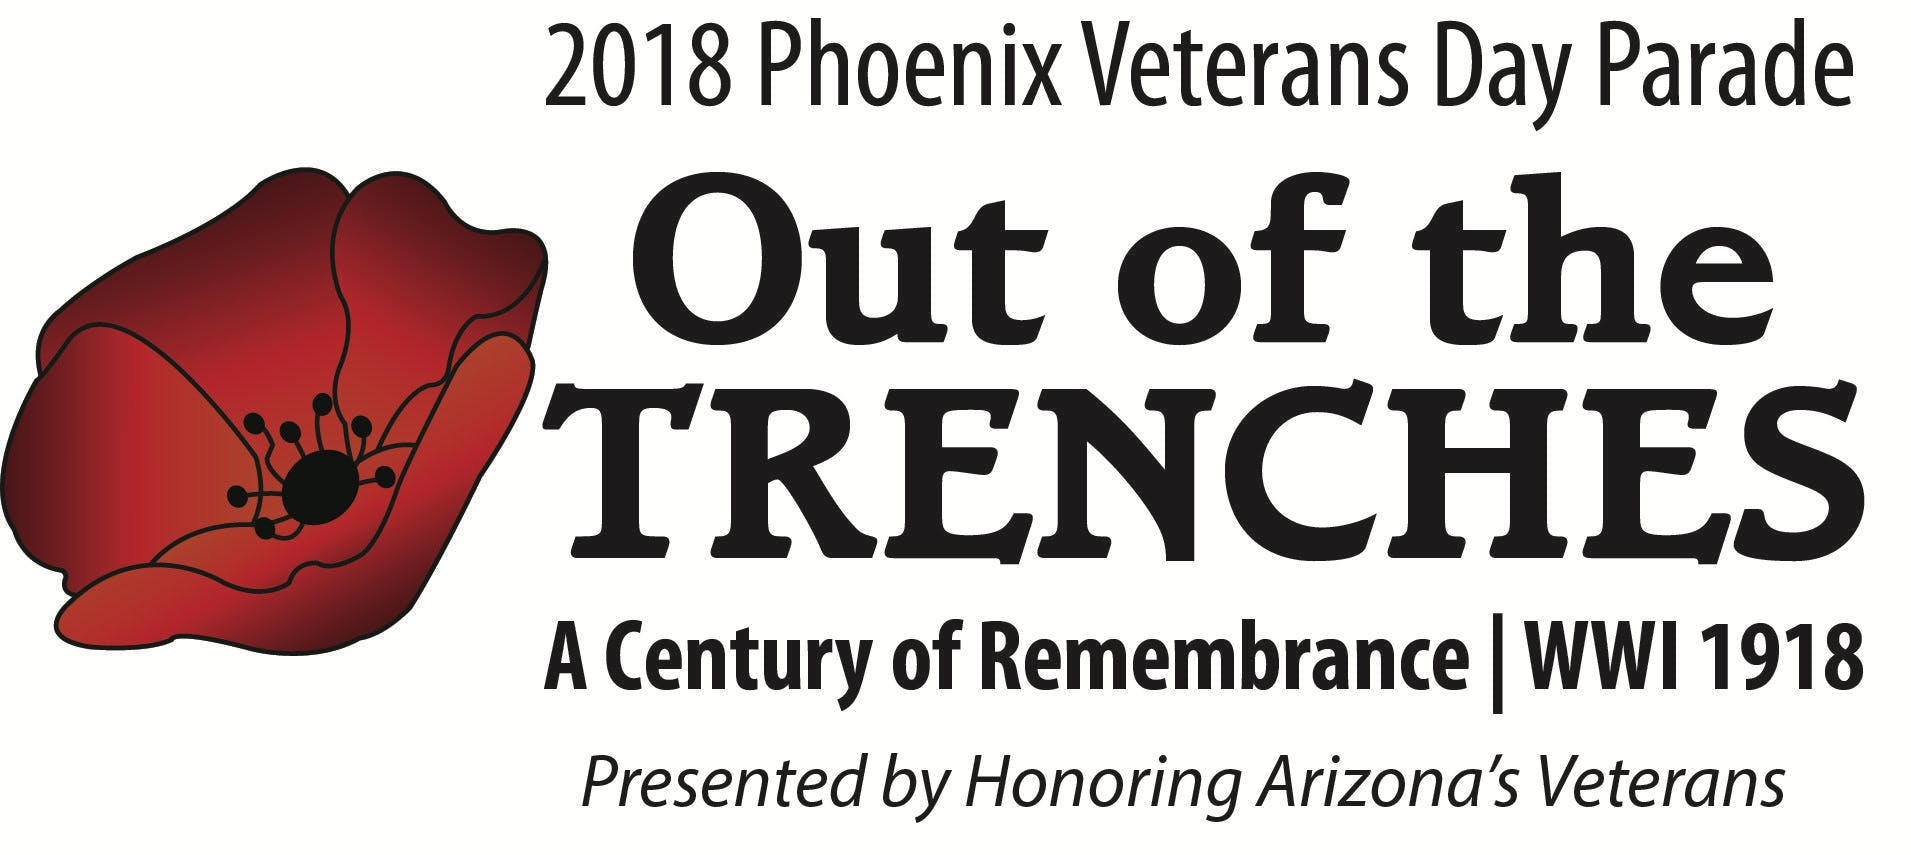 Meet the Phoenix Veterans Day Parade Grand Marshals for 2018